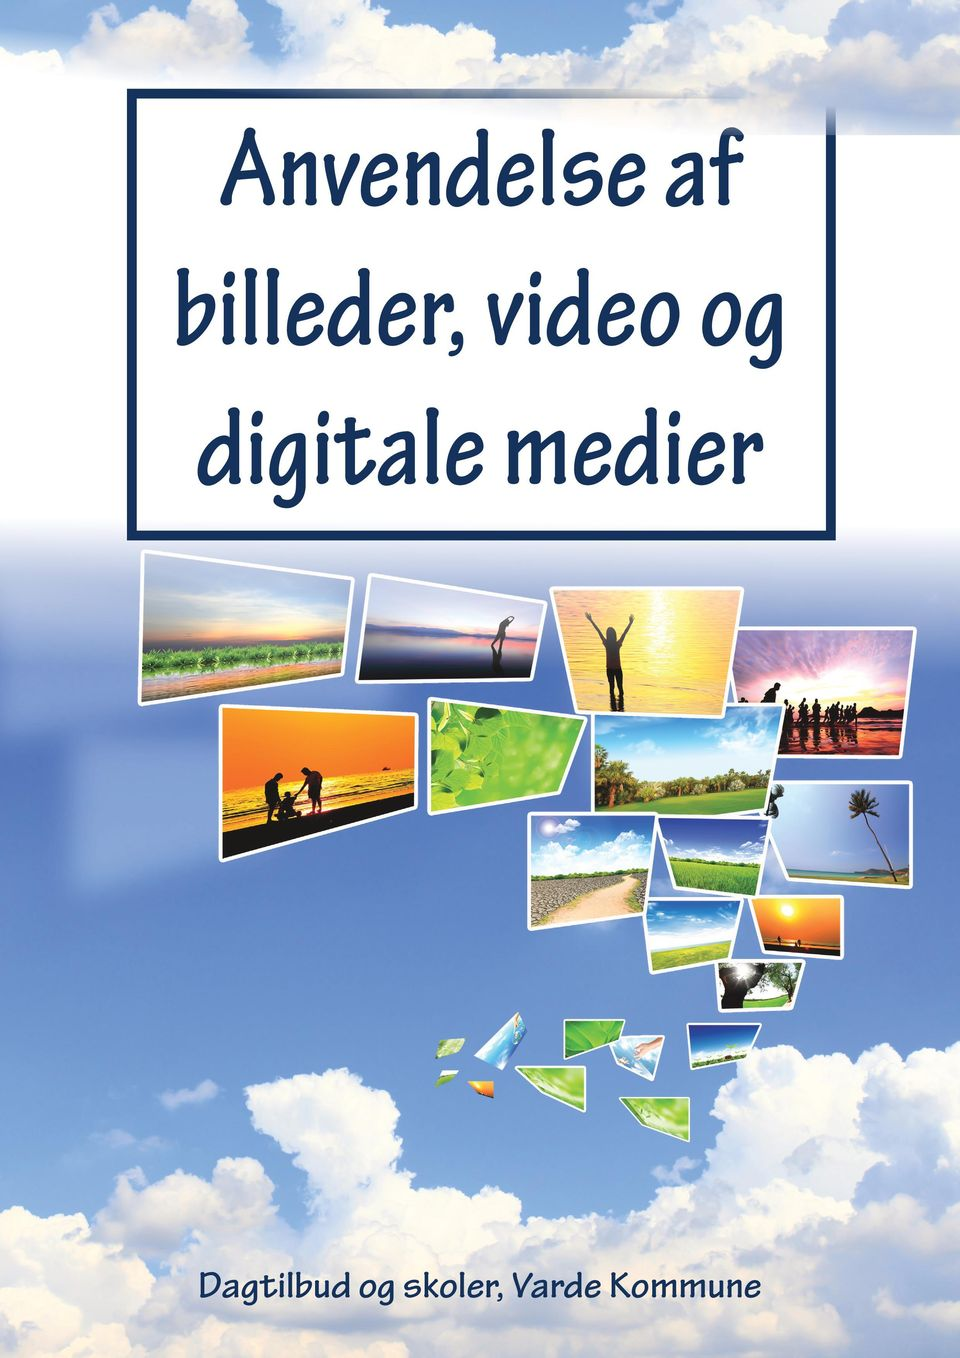 digitale medier